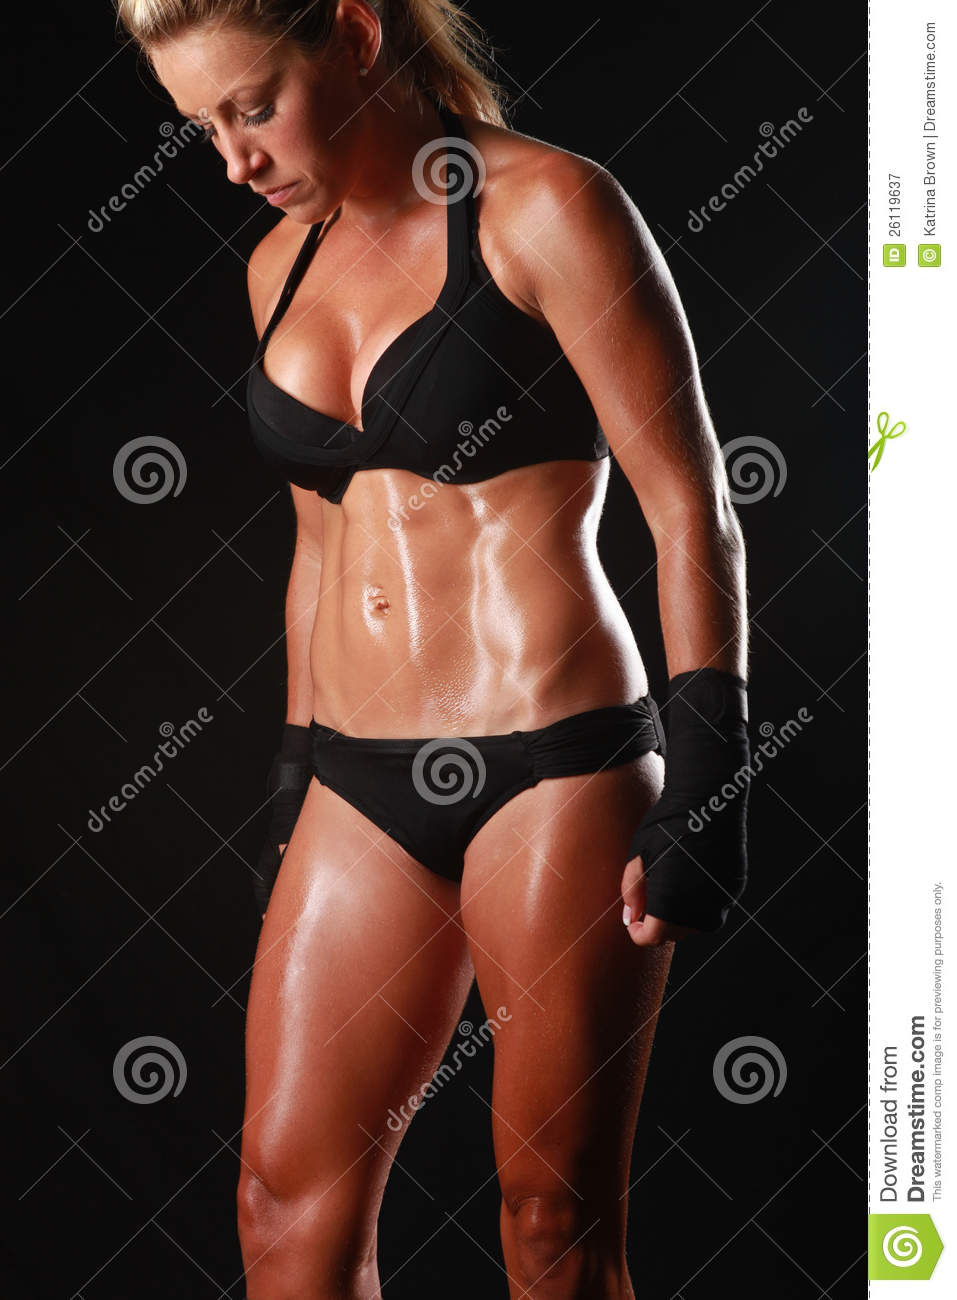 Female With Boxing Gear Stock Image Image Of Exercise